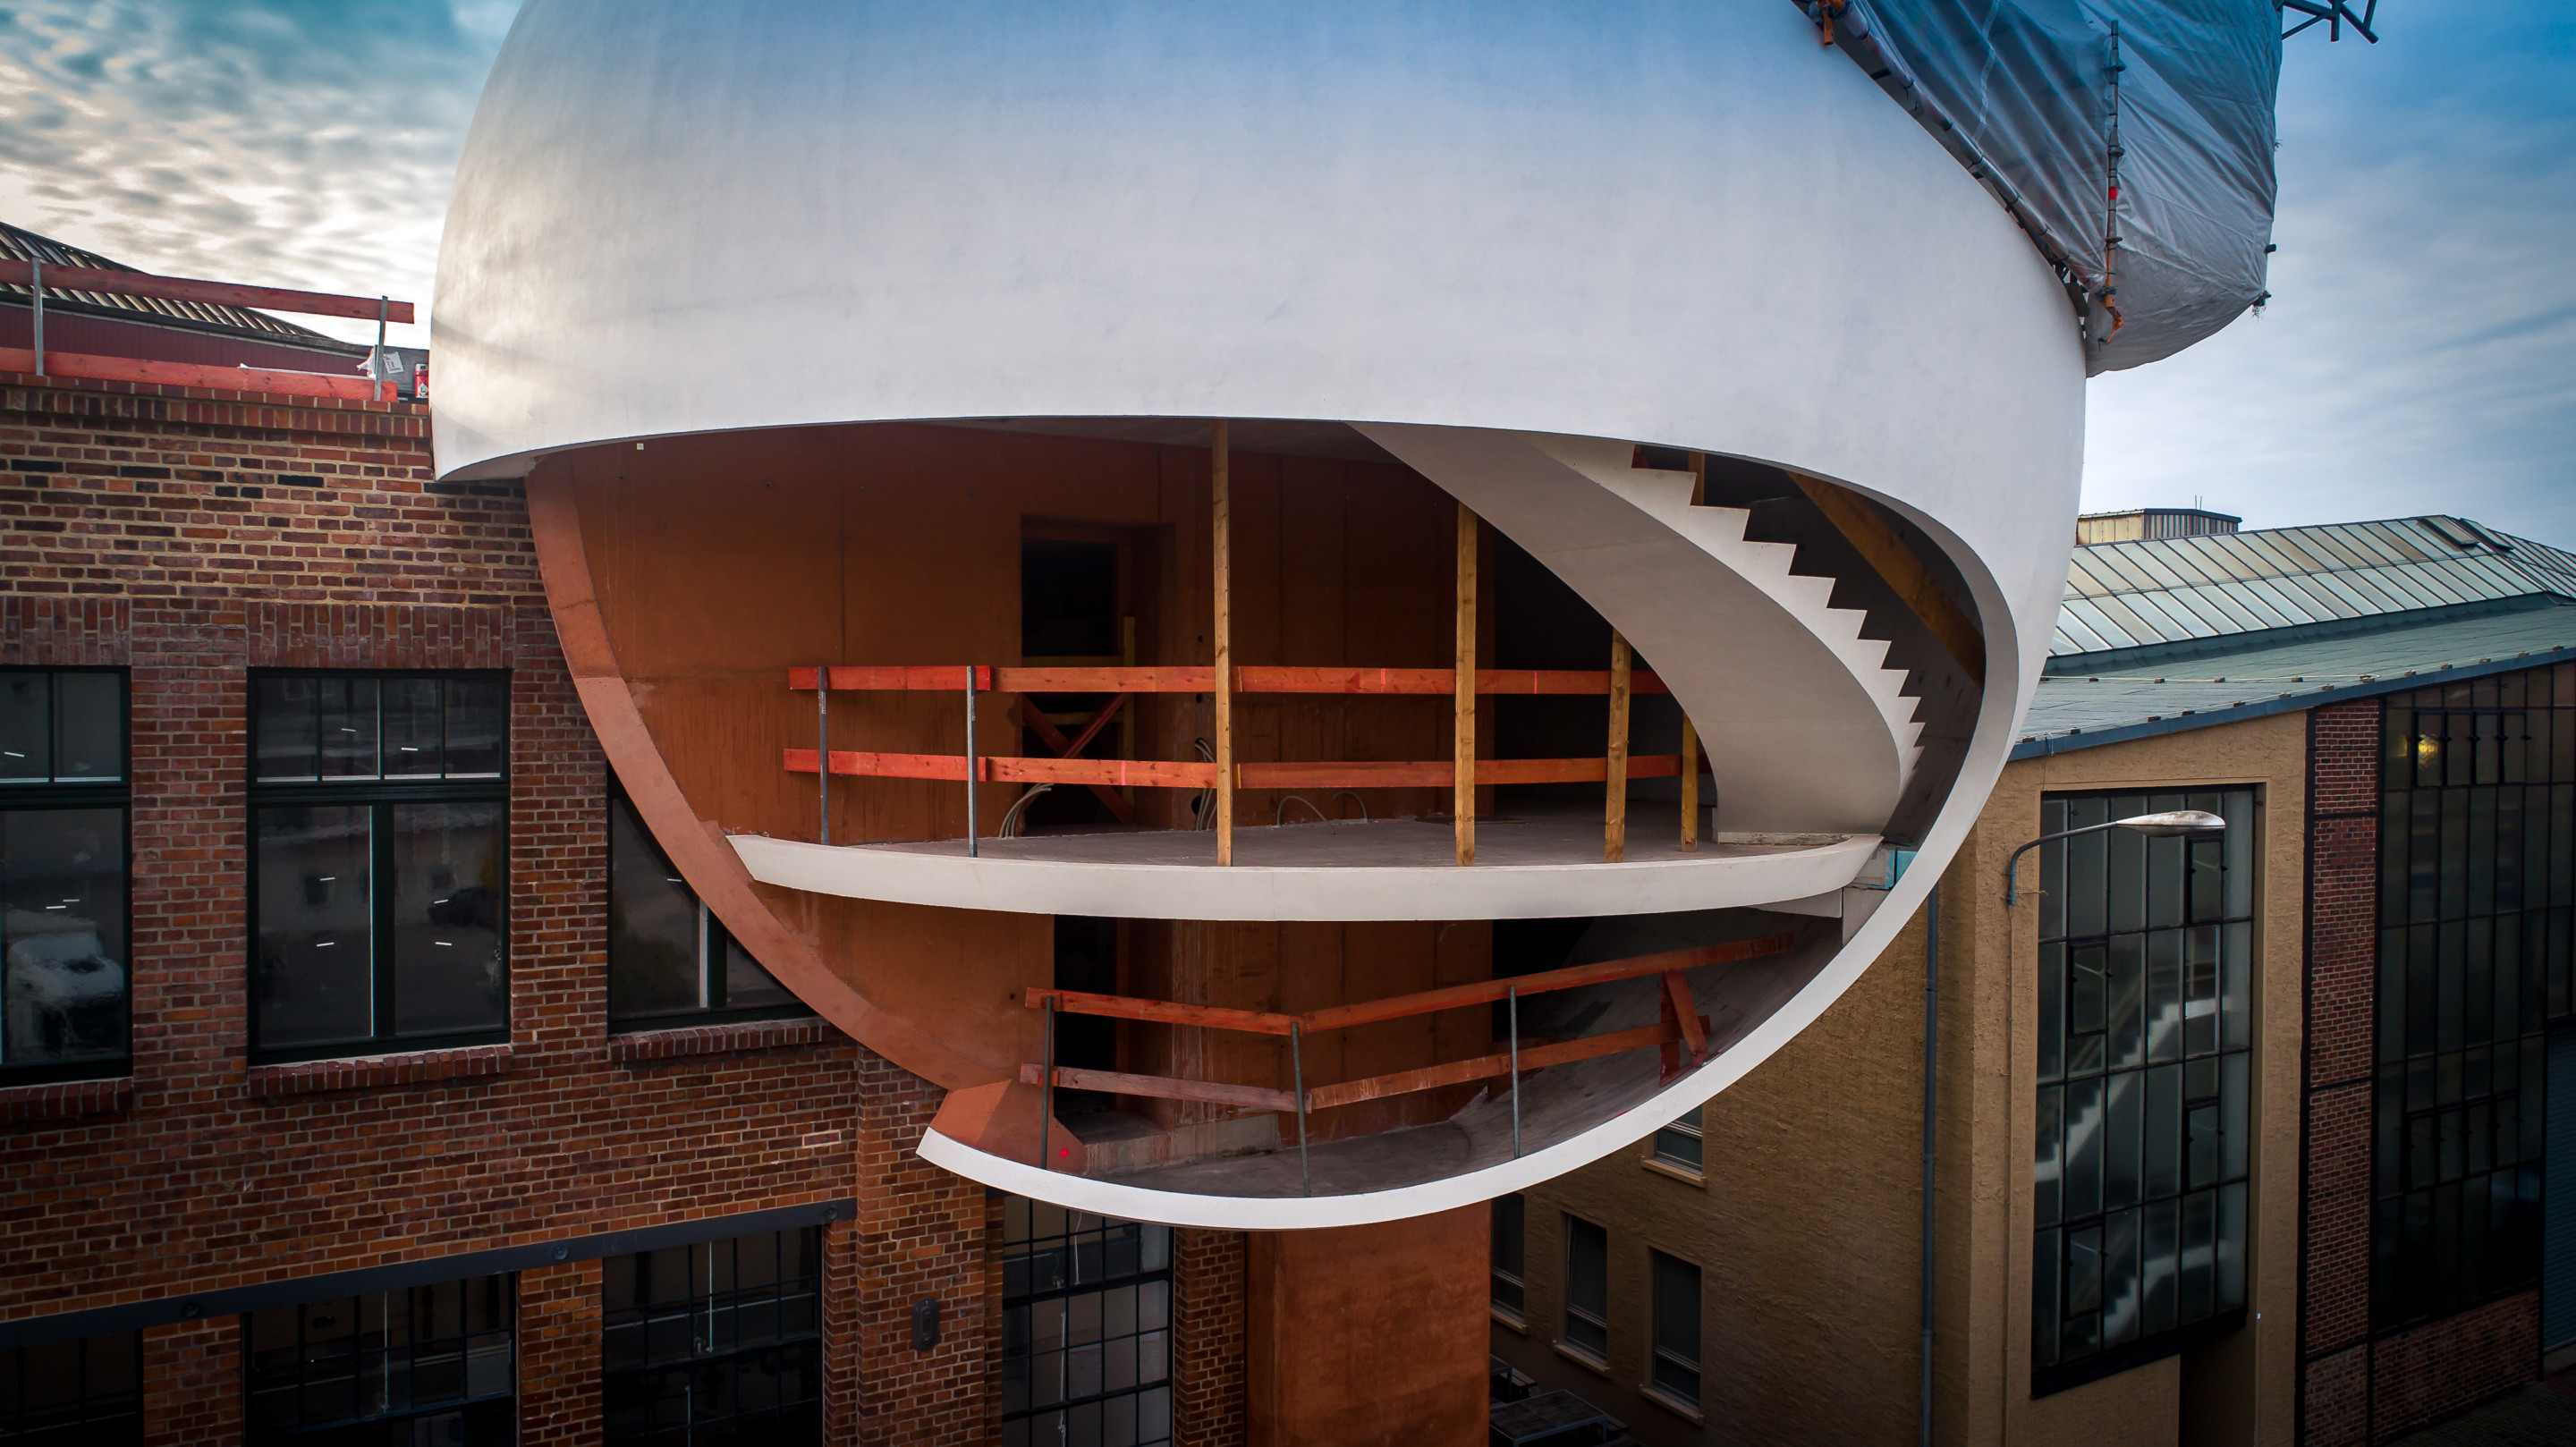 a spherical addition to a building under construction